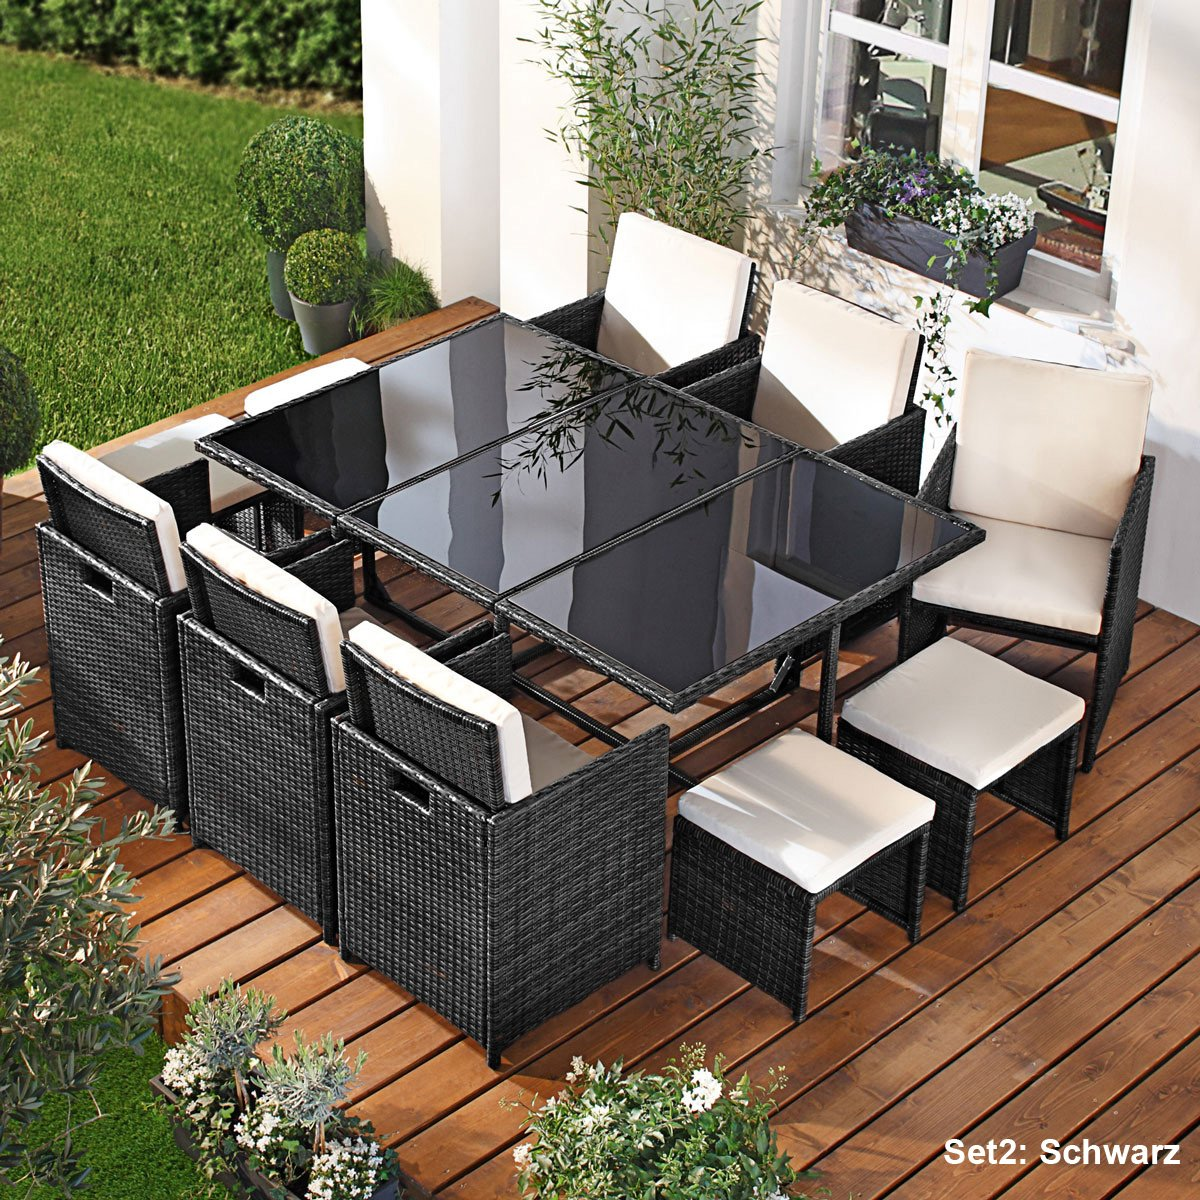 polyrattan gartenm belset camouflage 11tlg schwarz poly rattan sitzgarnitur gartenm bel garten. Black Bedroom Furniture Sets. Home Design Ideas